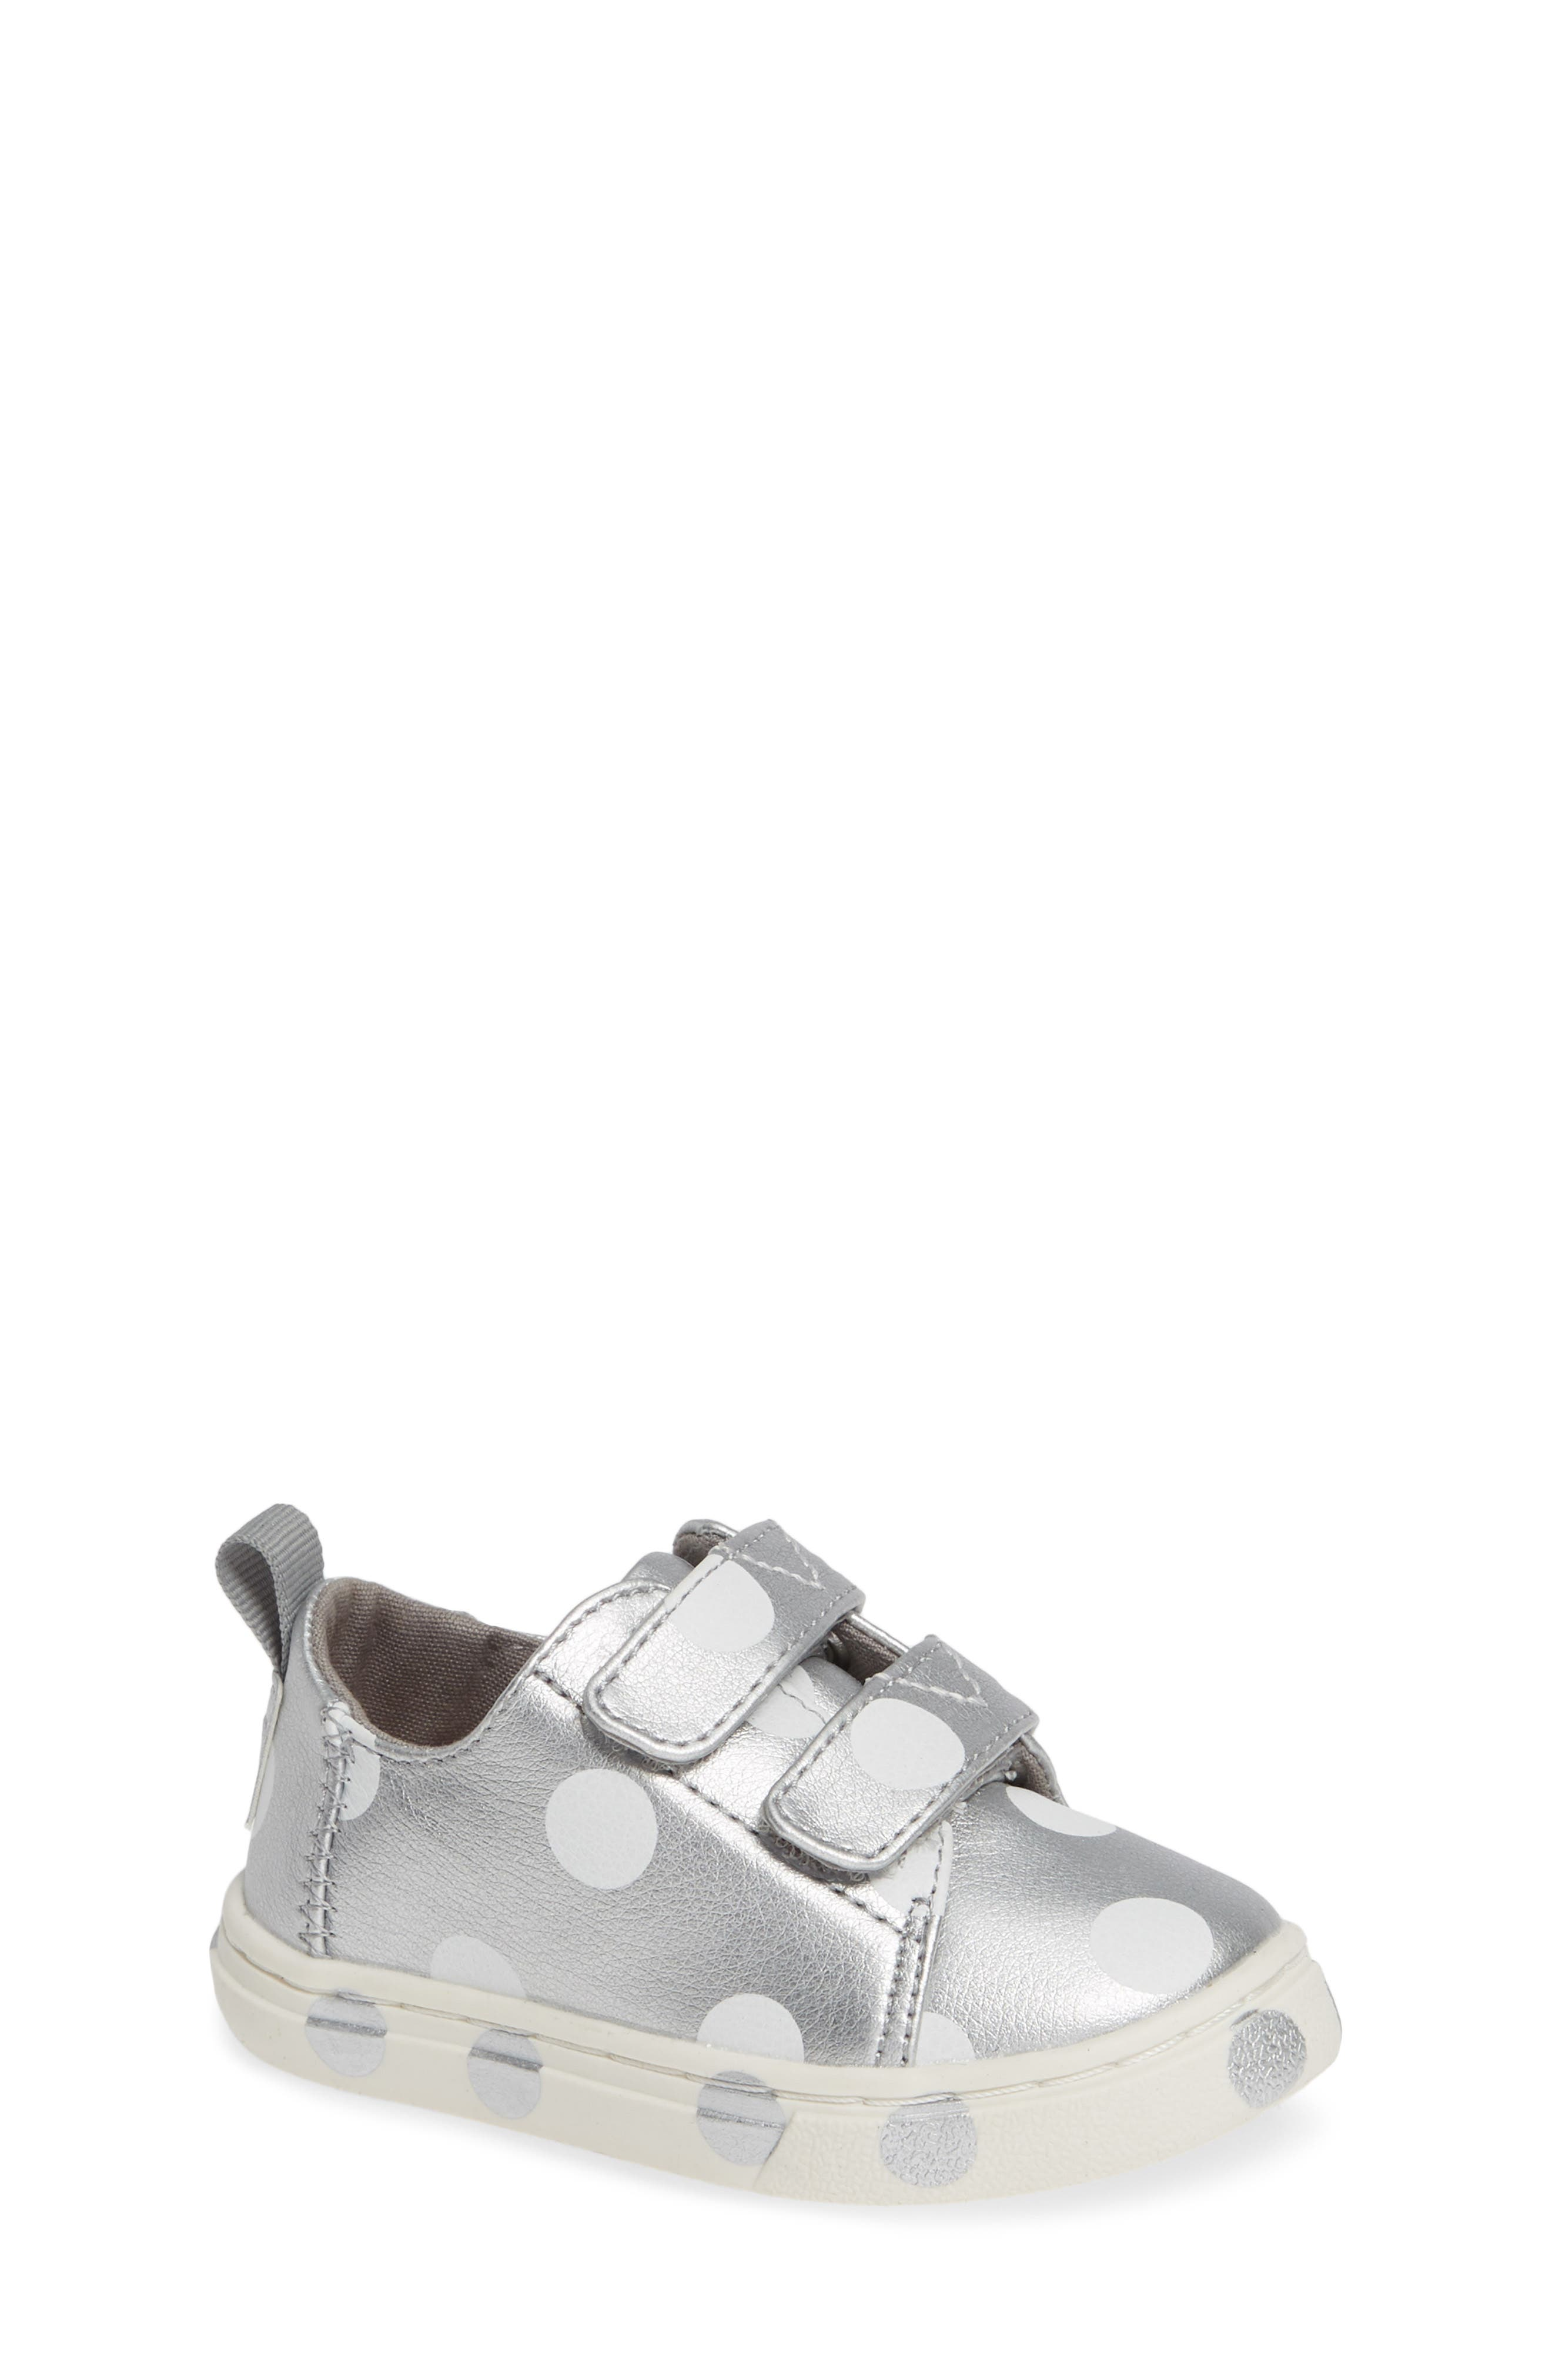 Lenny Sneaker,                         Main,                         color, SILVER SYNTHETIC LEATHER DOTS